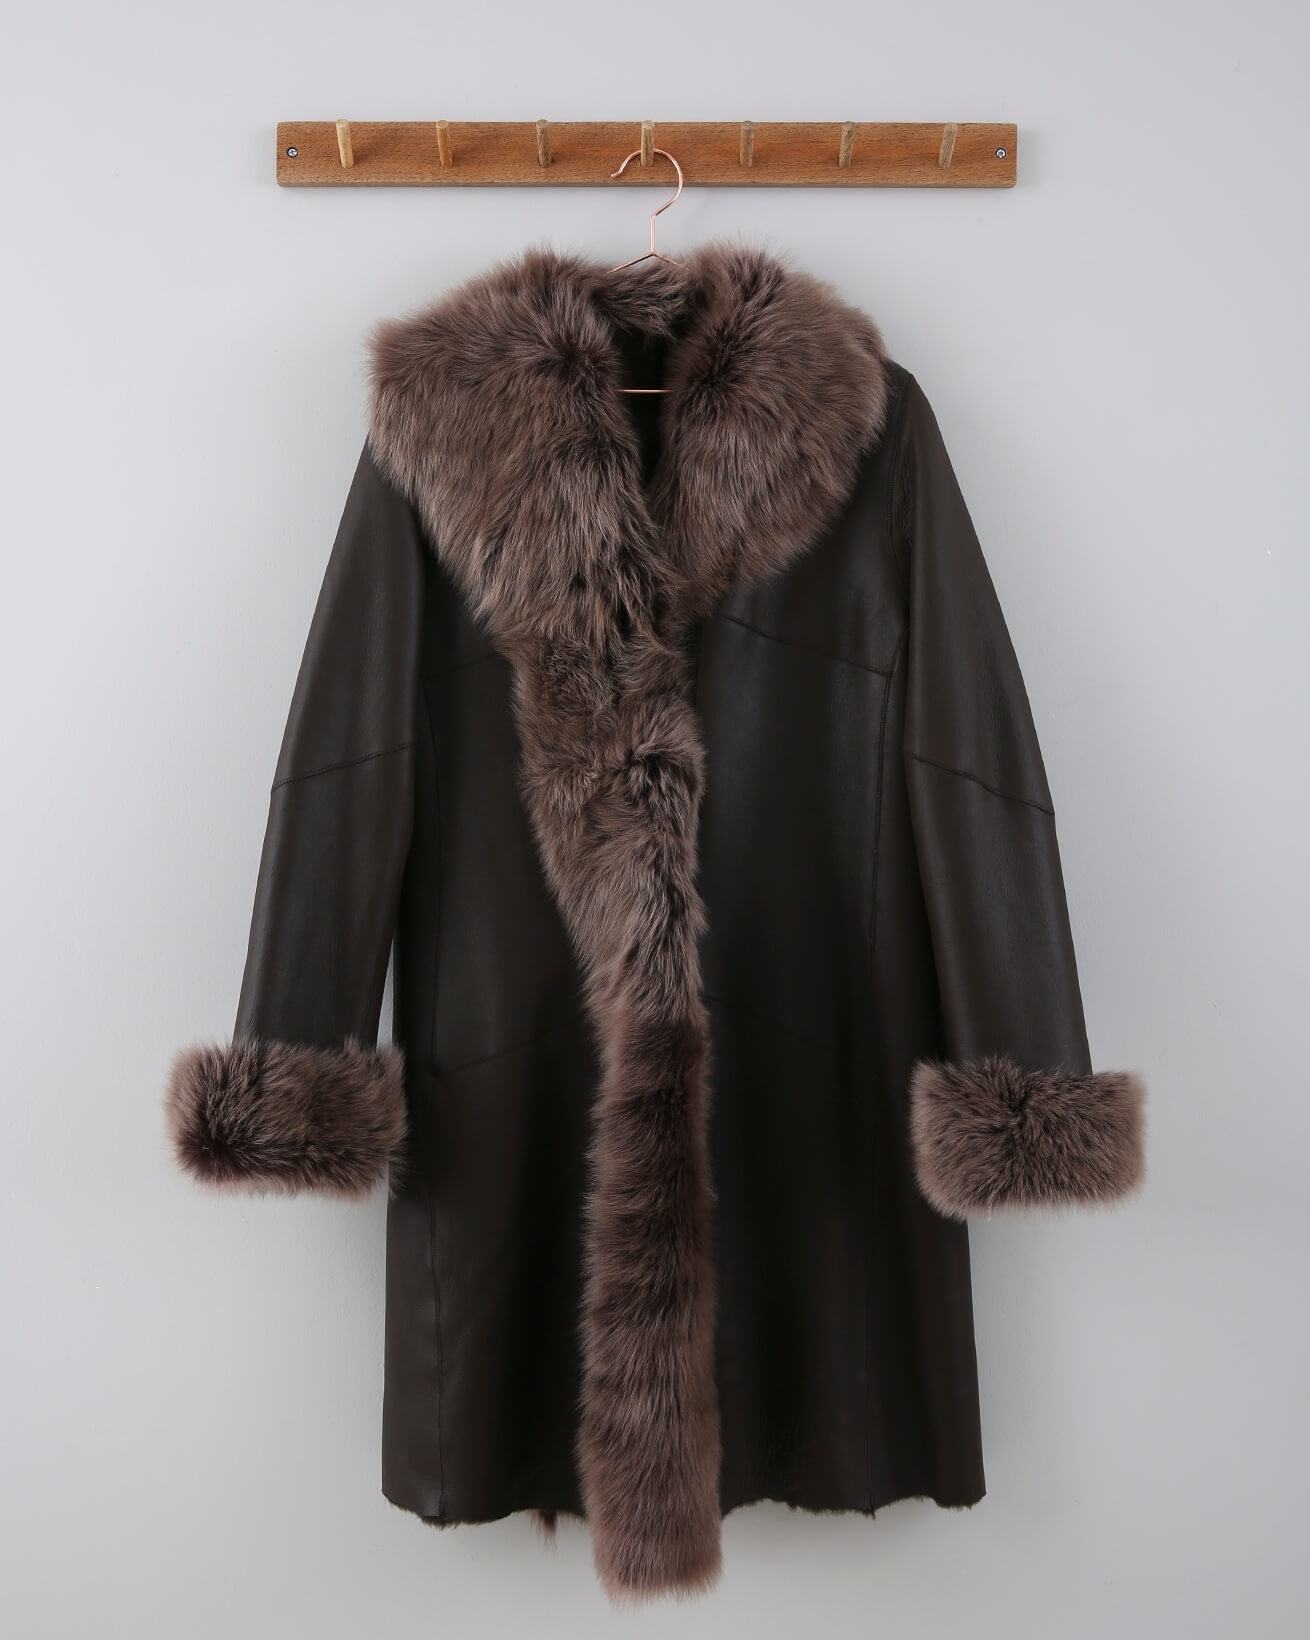 3/4 Toscana Trim Coat - Size XS / S - Dark Brown - 650